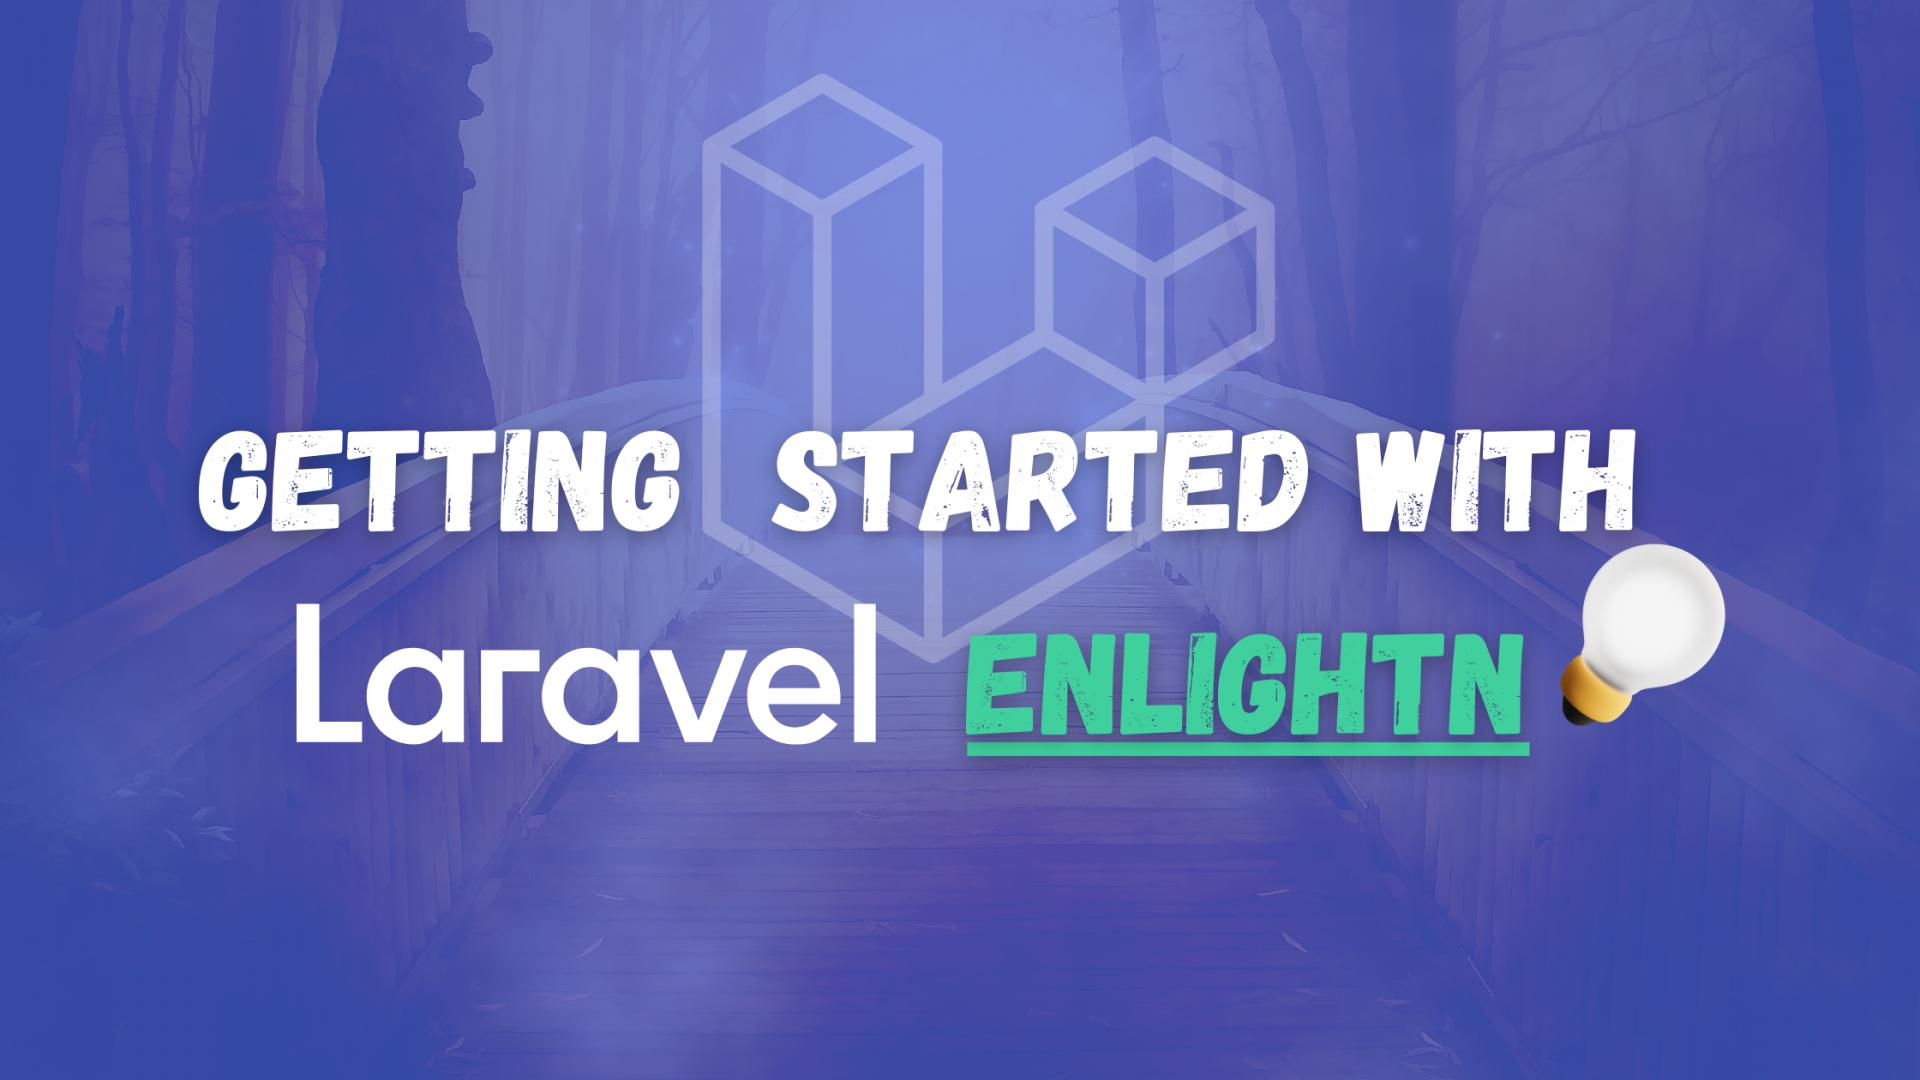 What is Laravel Enlightn and how to use it?